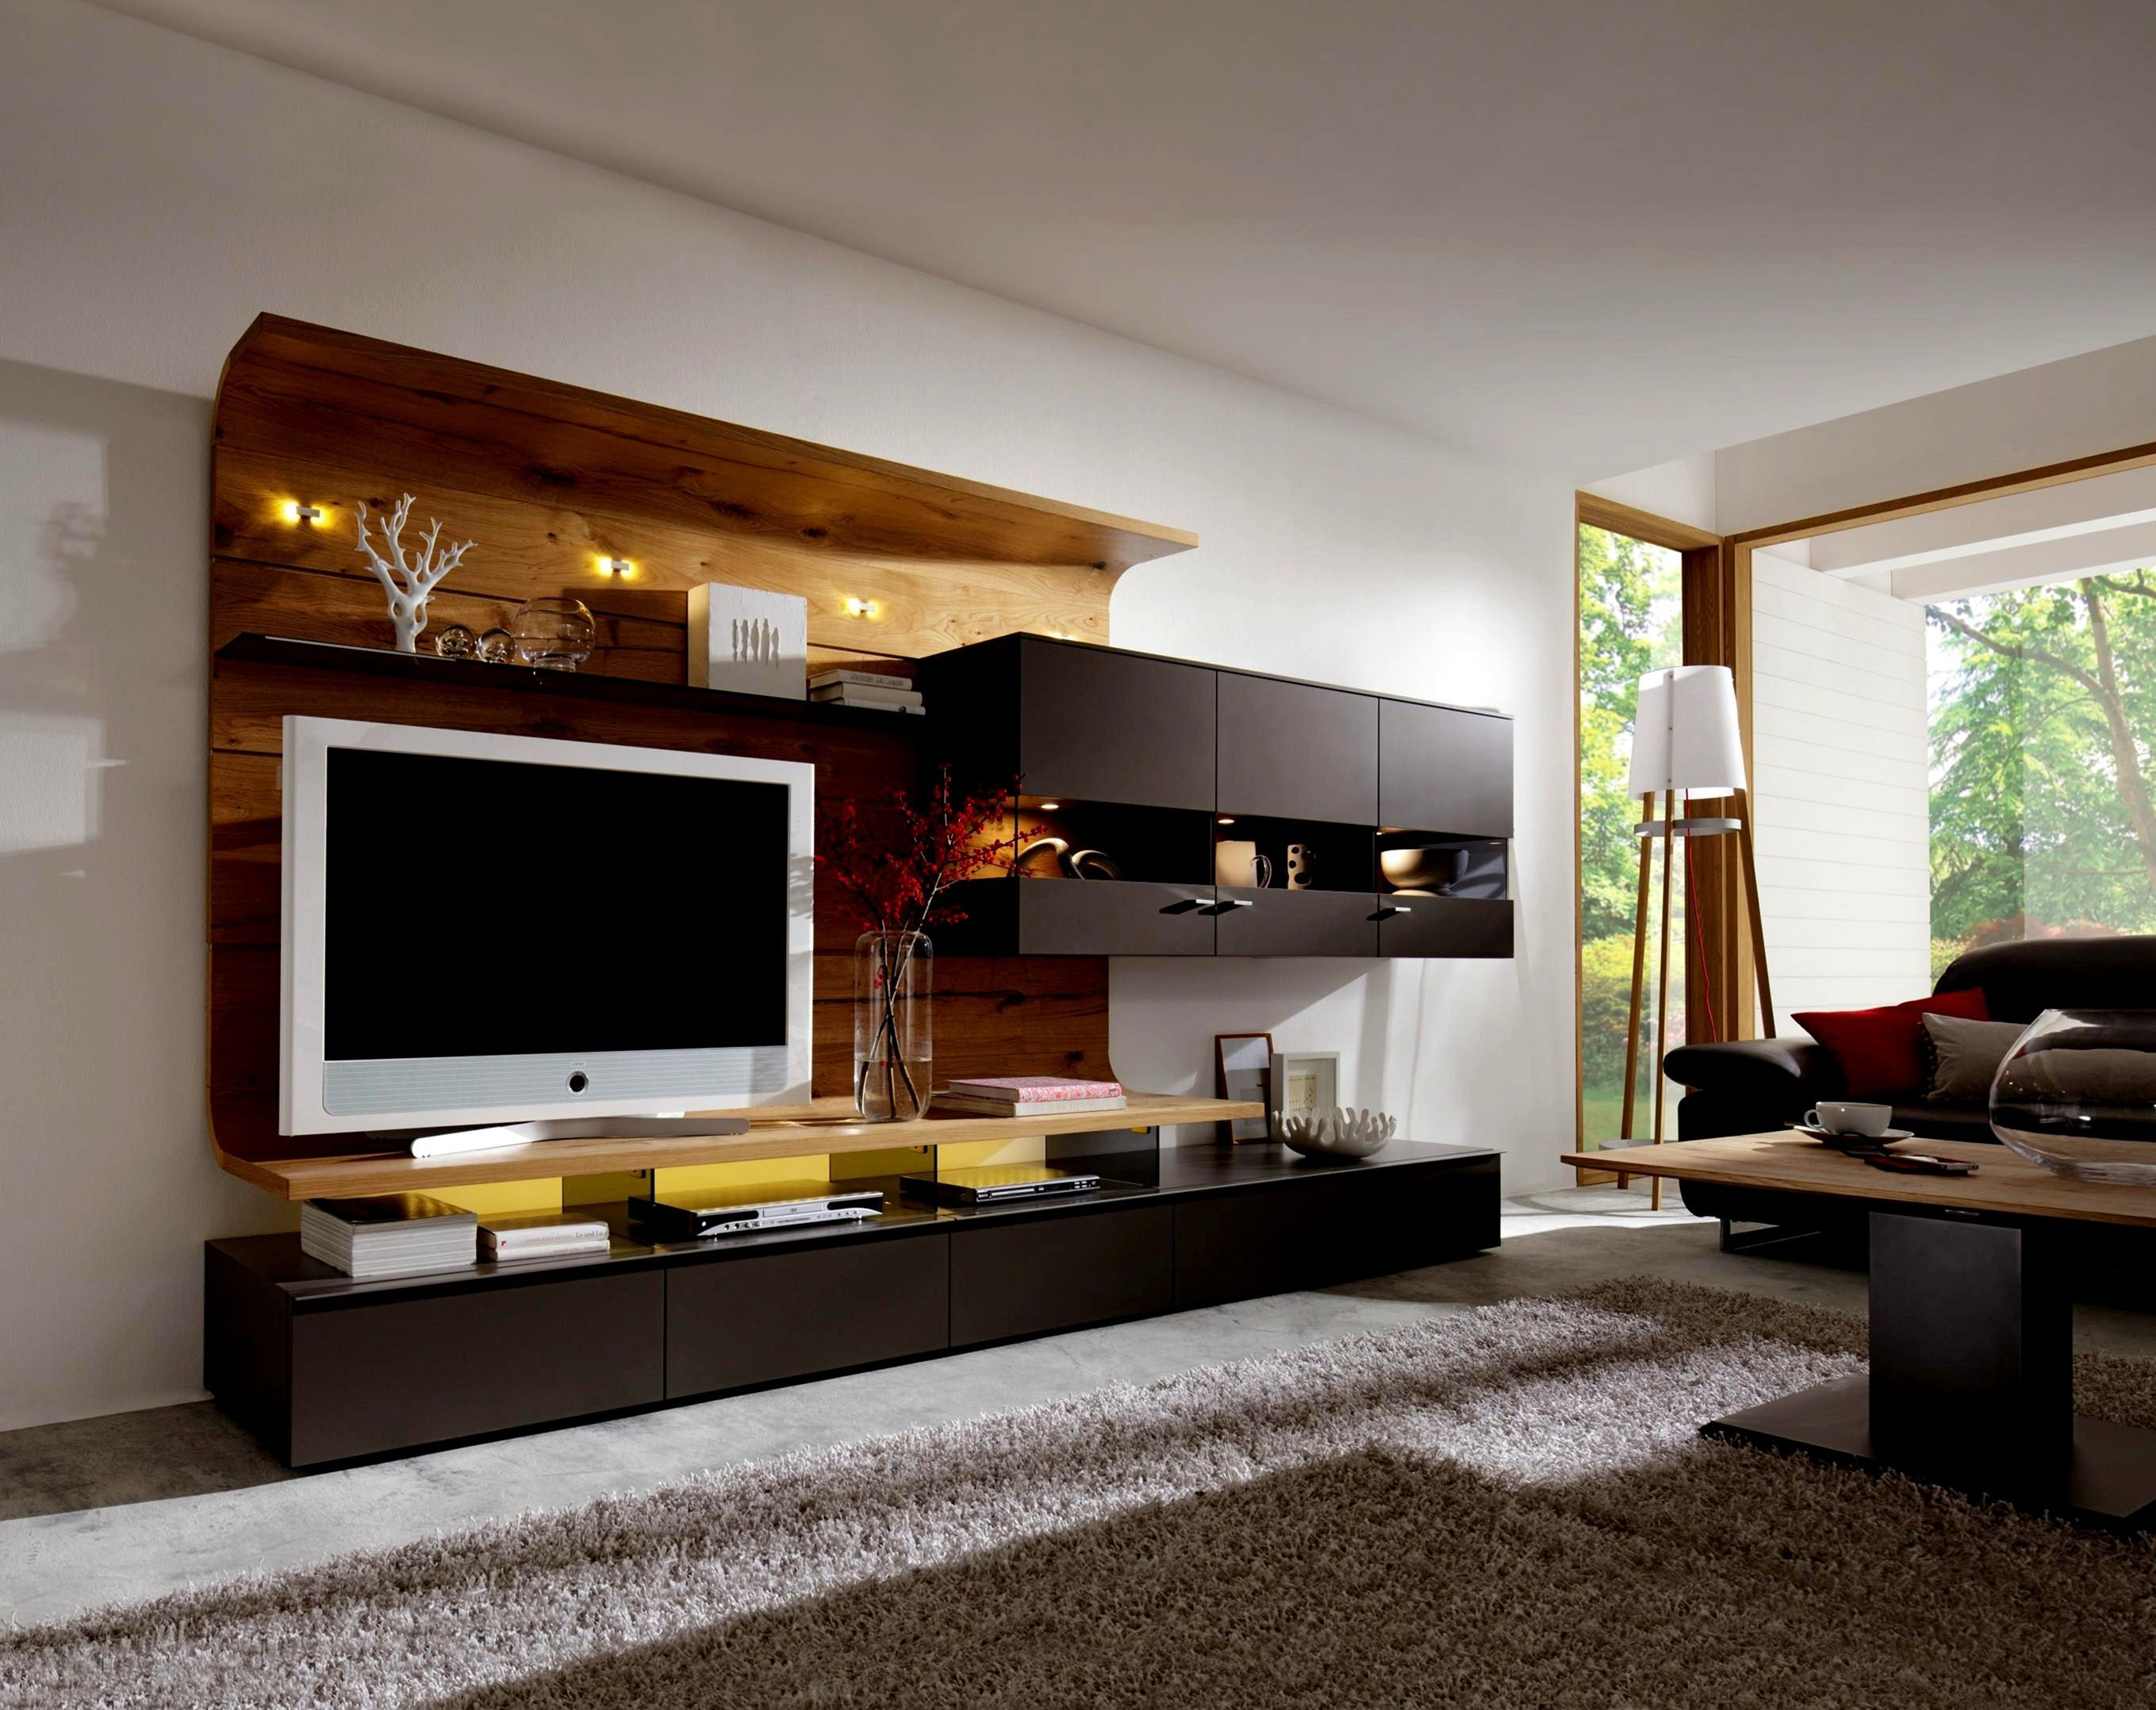 35 Stunning Wall Units Designs for Cozy Living Room Ideas ...